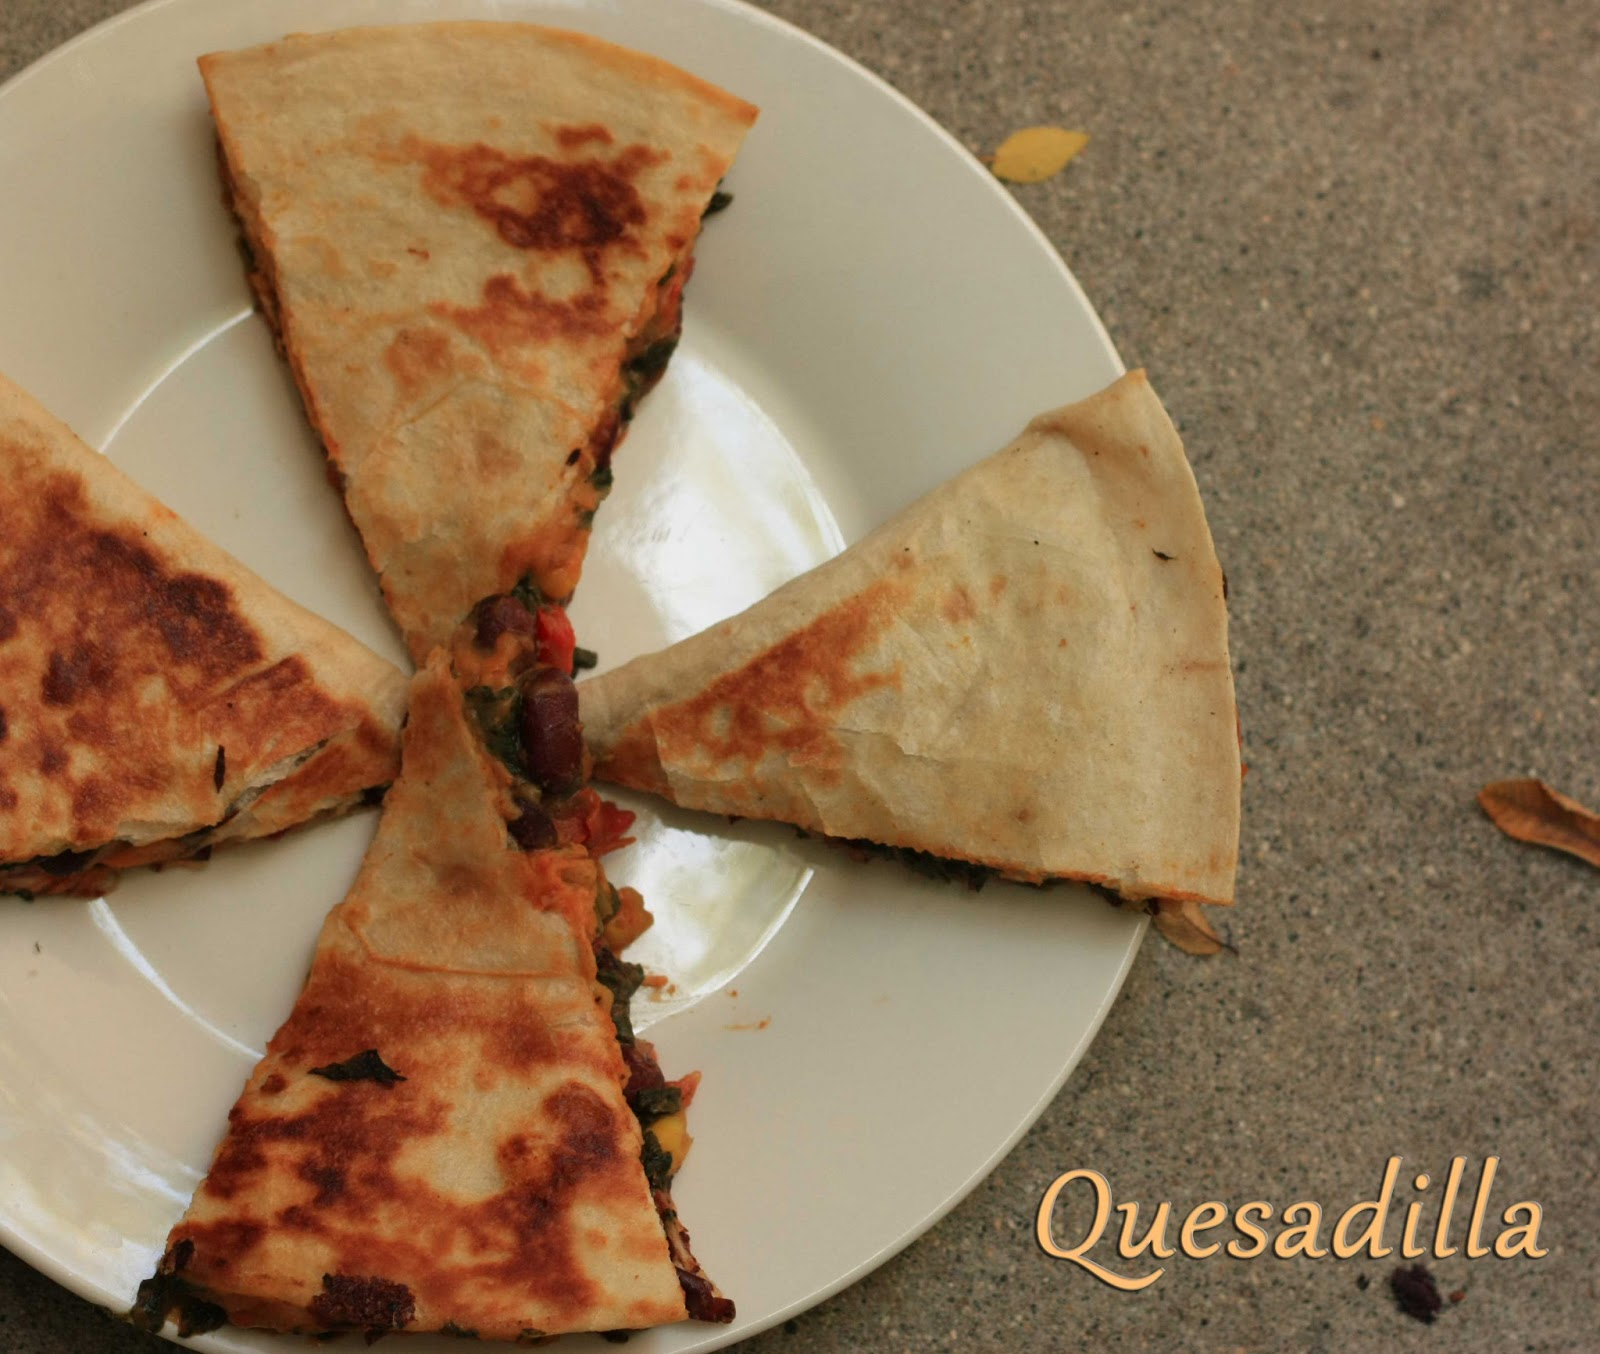 how to make a quesadilla on the stove